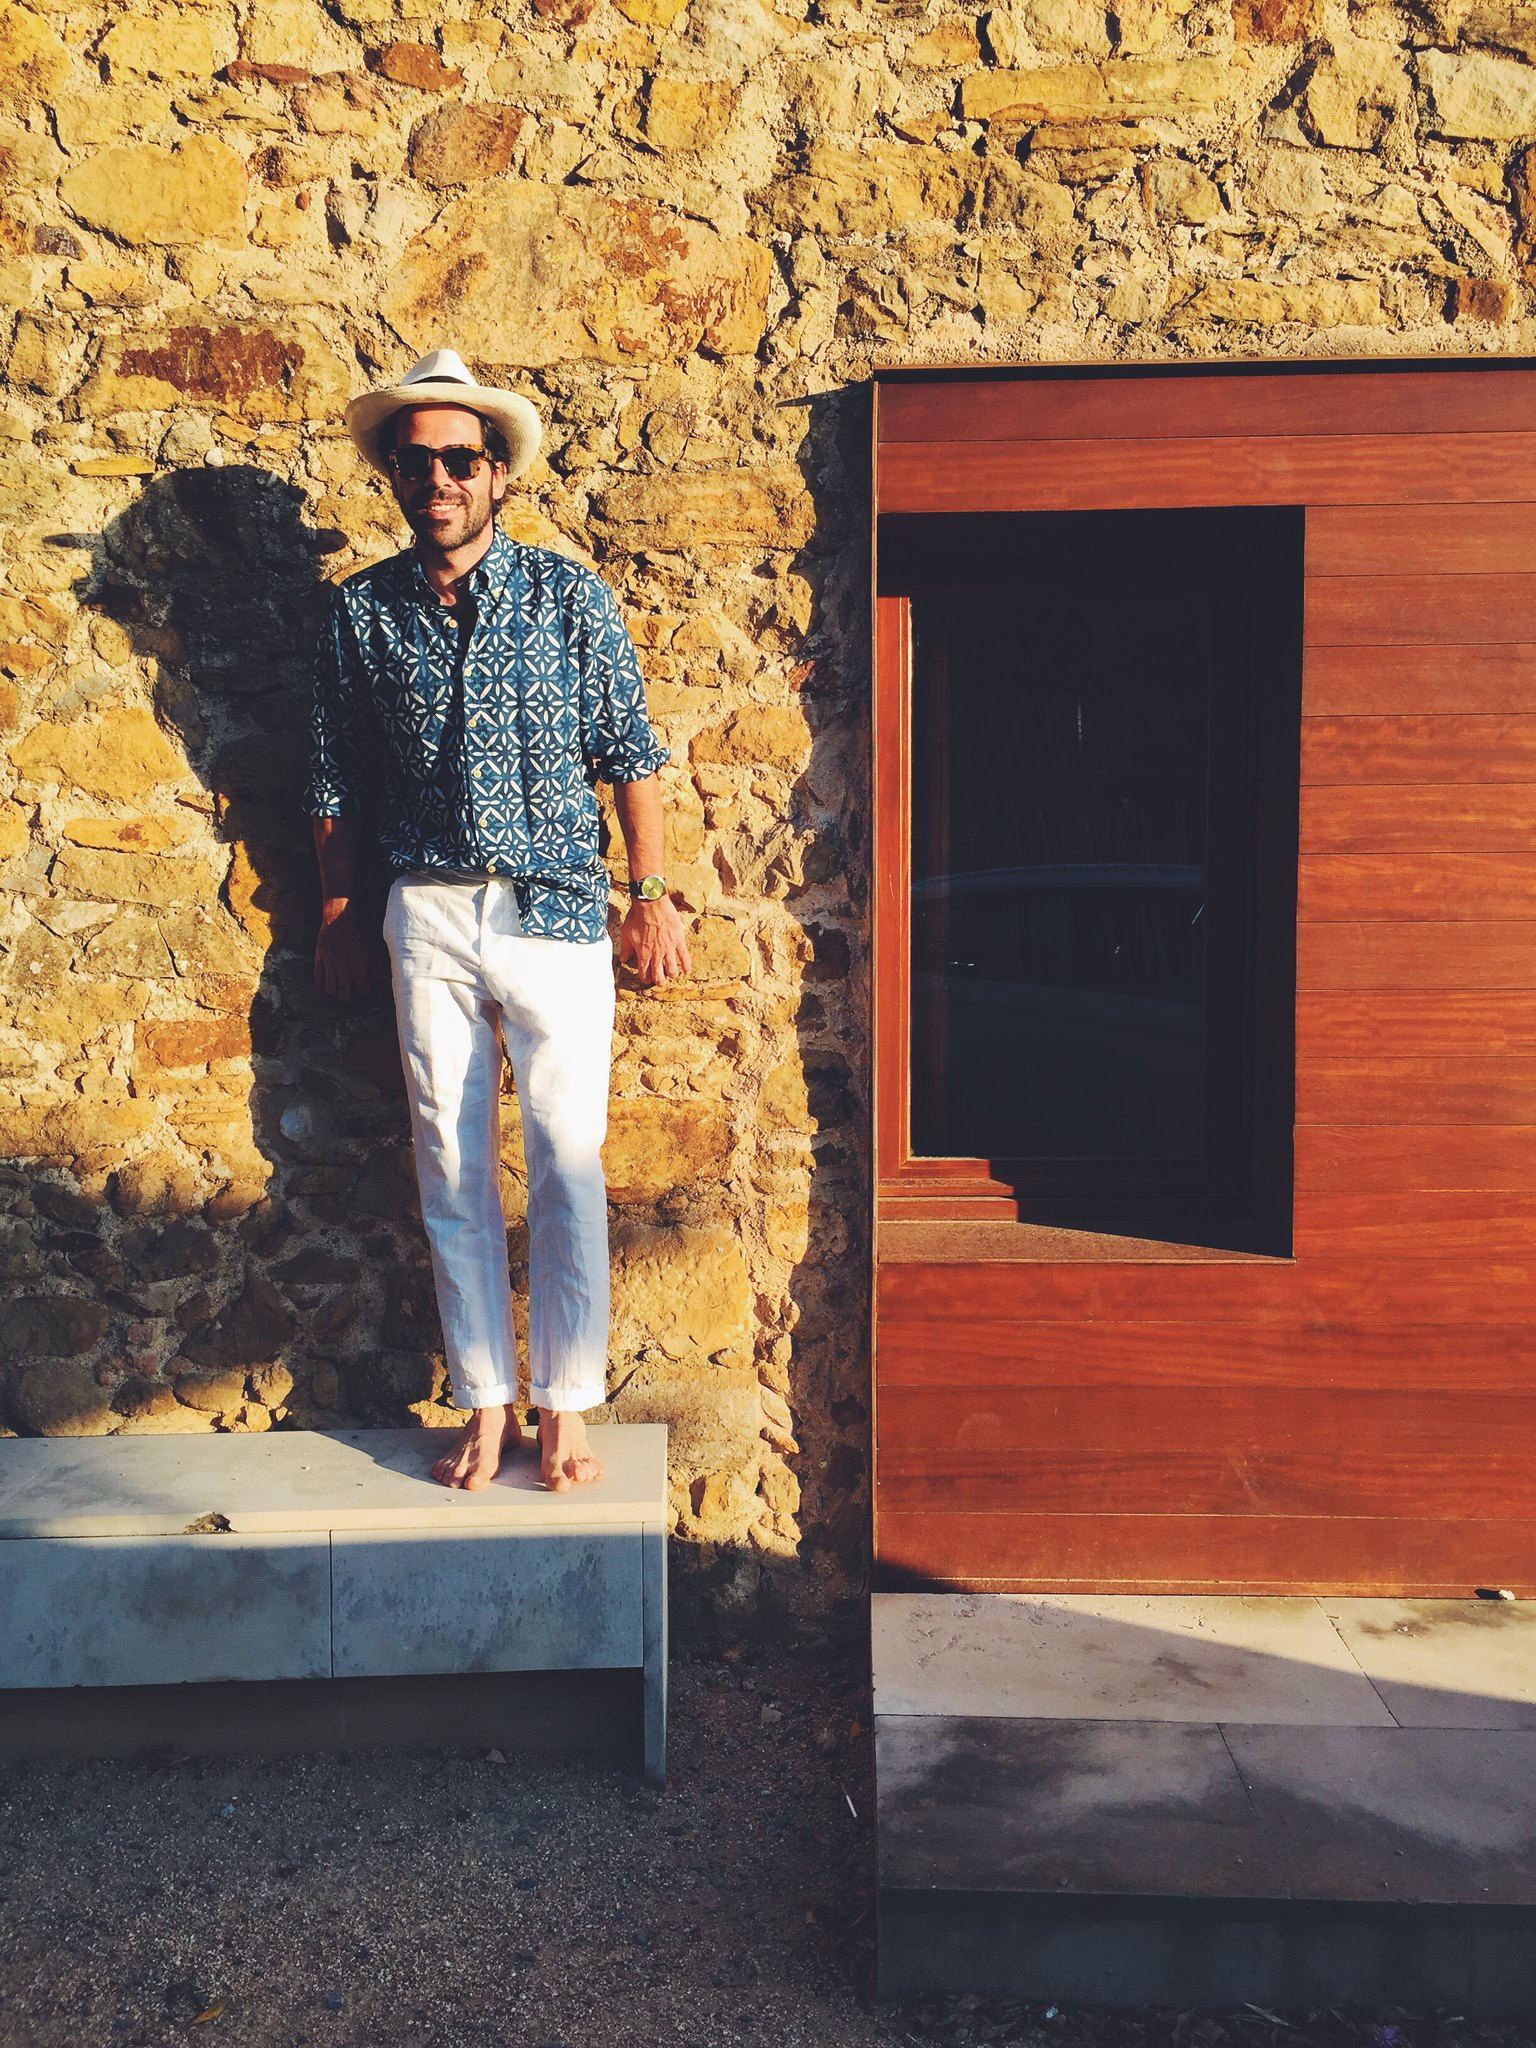 _miguel_carrizo_manlul_mango_man_brooks_brothers_gucci_sunset_girona_